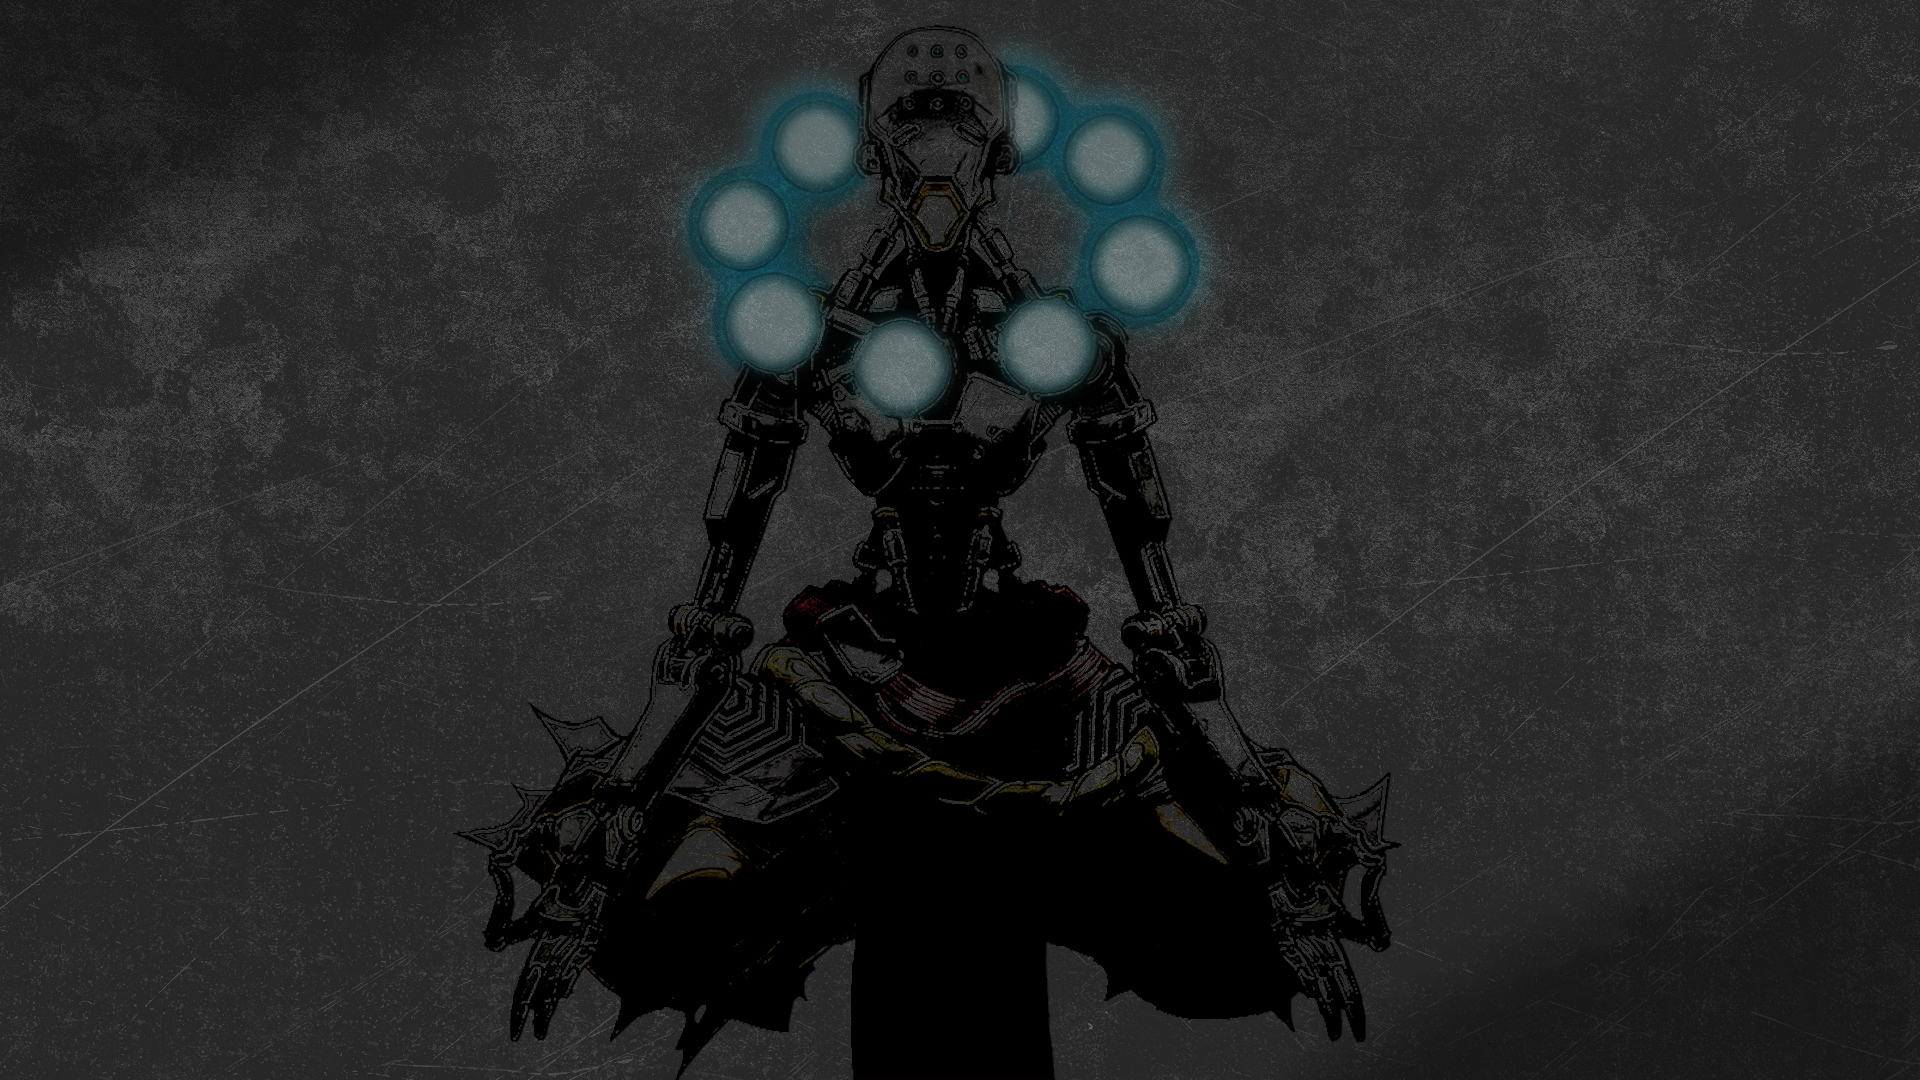 General 1920x1080 Overwatch Zenyatta (Overwatch) dark background video games